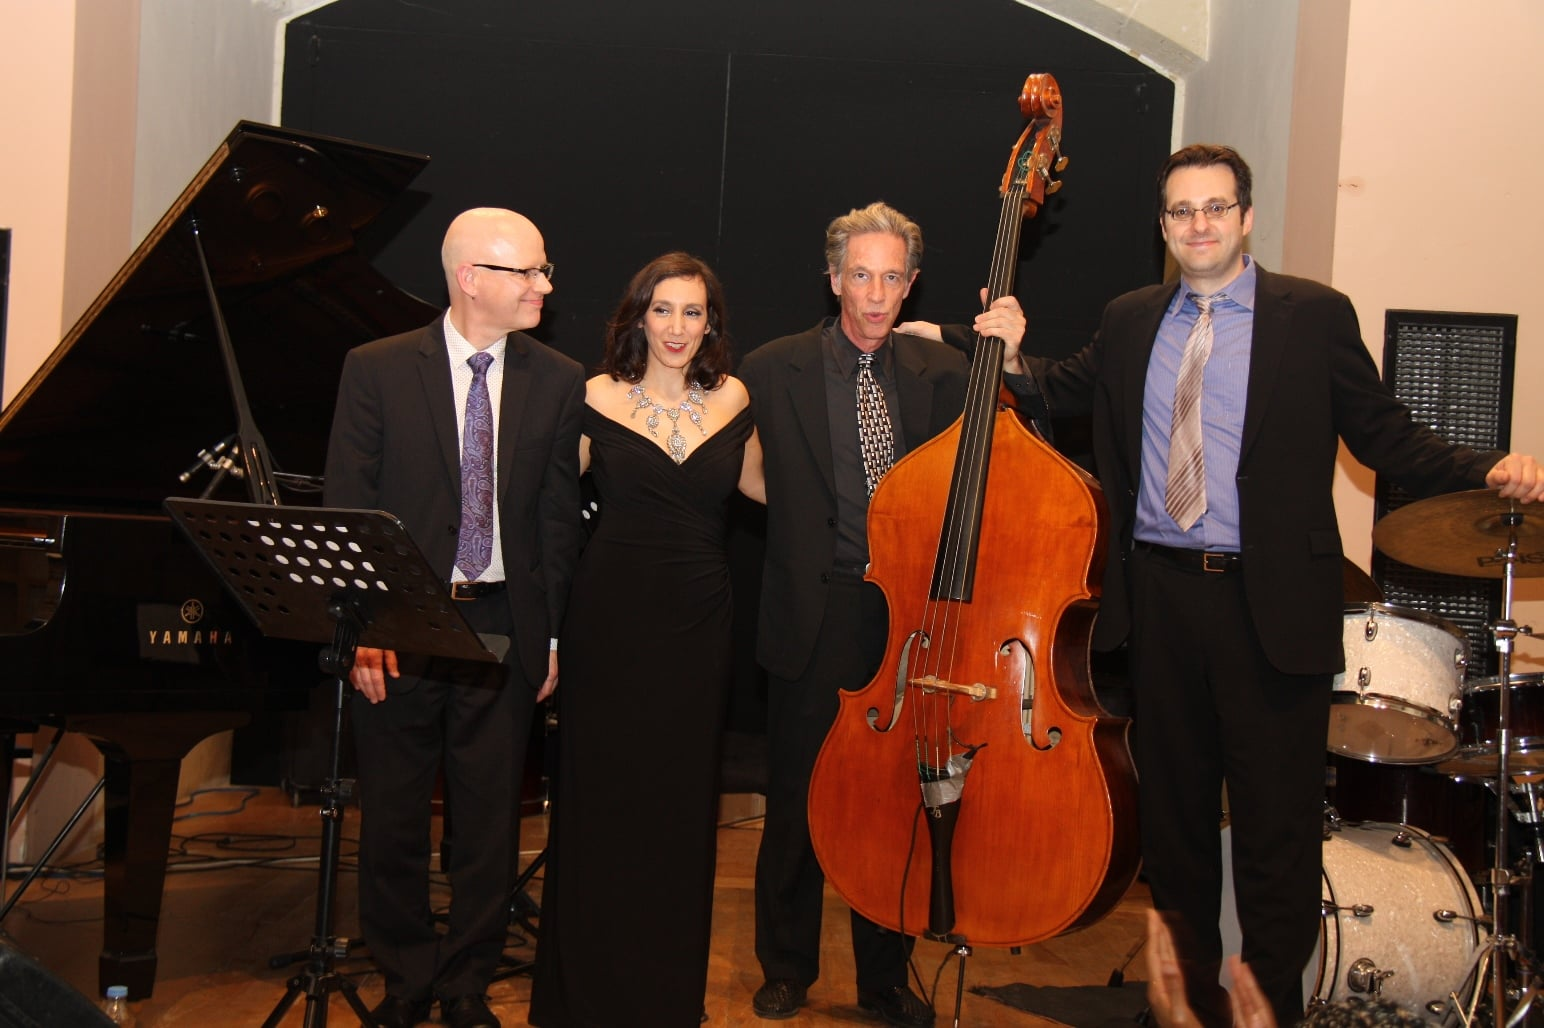 Left to right: Jim Ridl, Gabrielle Stravelli, Pat O'Leary and Jordan Young